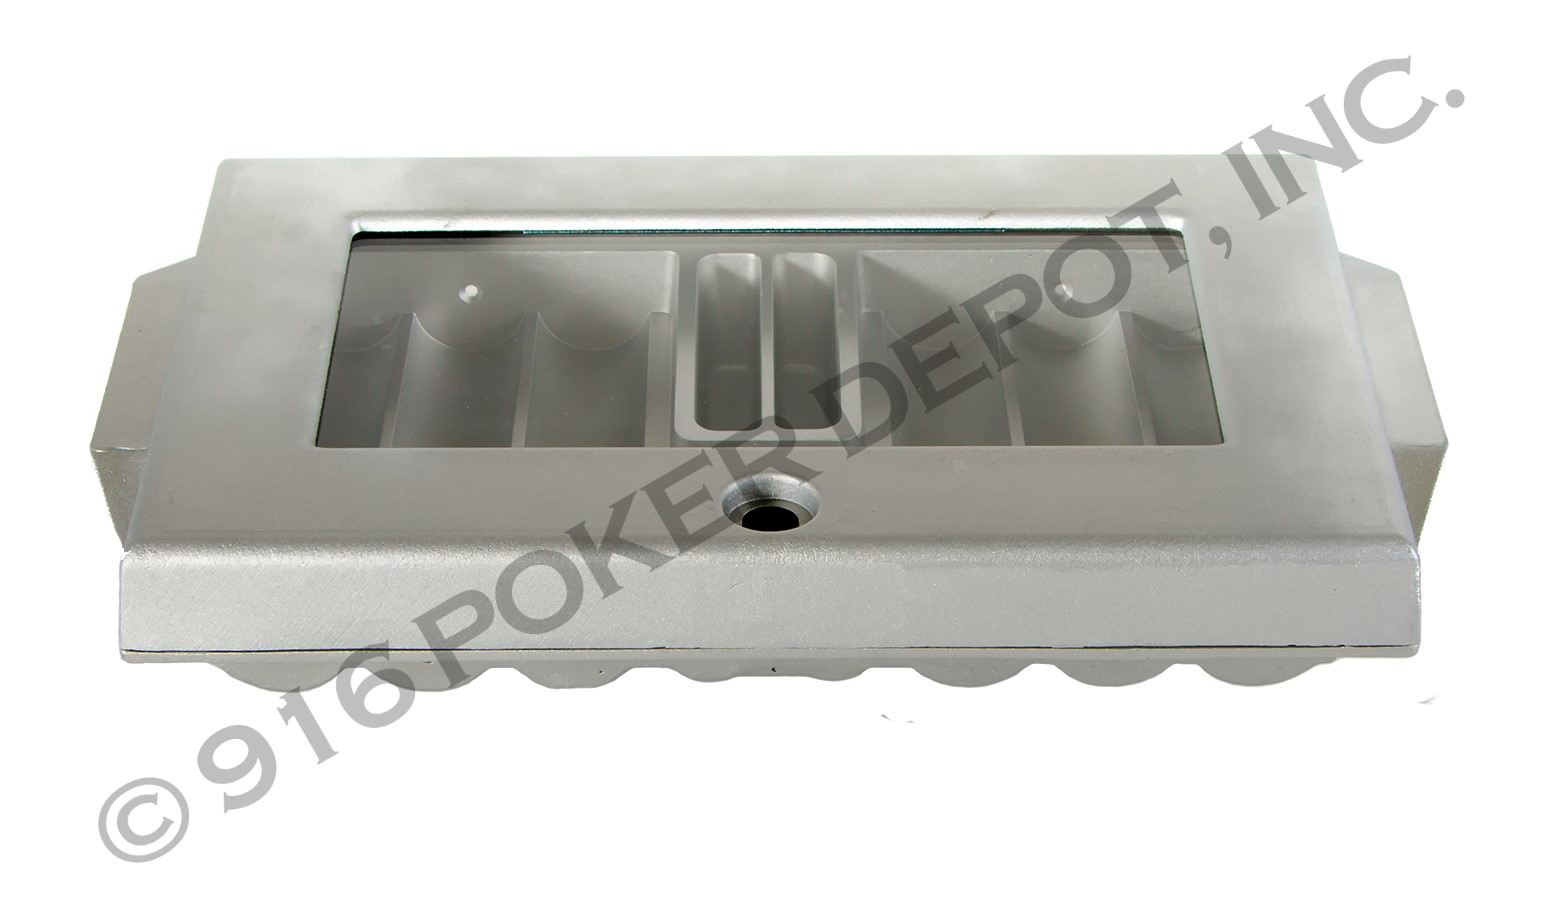 Chip Trays and Drop Boxes